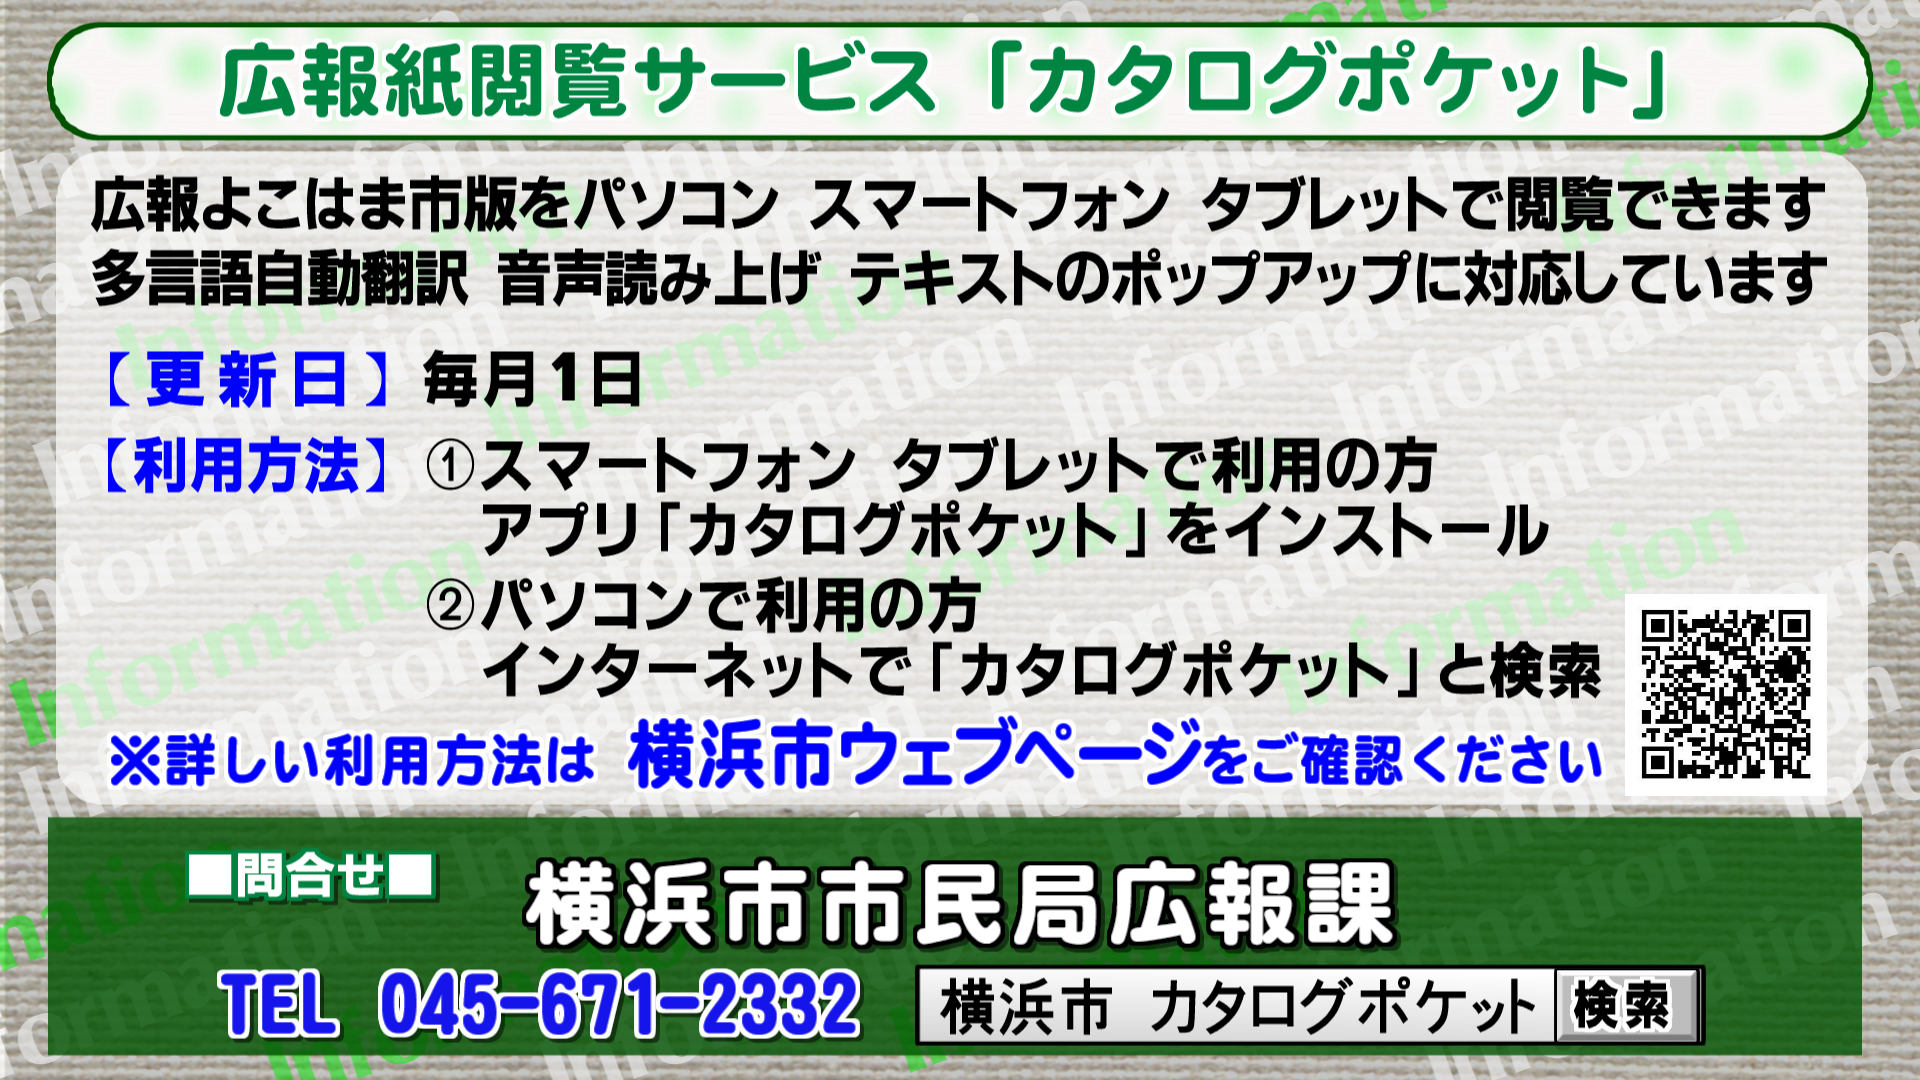 info3.png